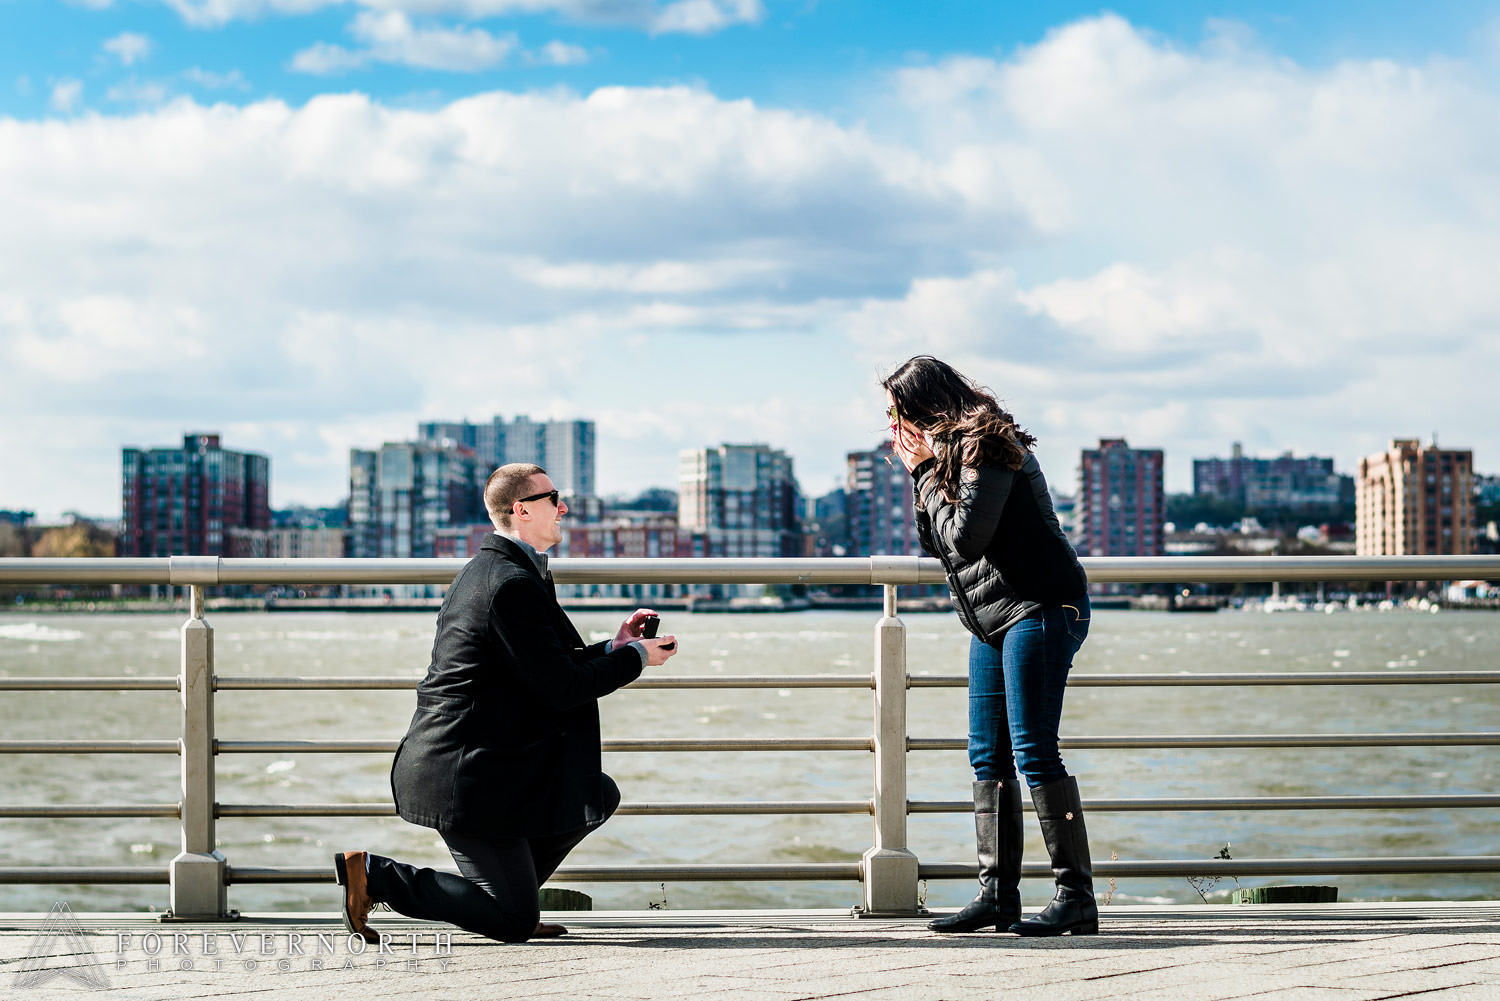 Cainero-Hudson-River-Park-Pier-62-New-York-Proposal-Engagement-Photographer-17.JPG